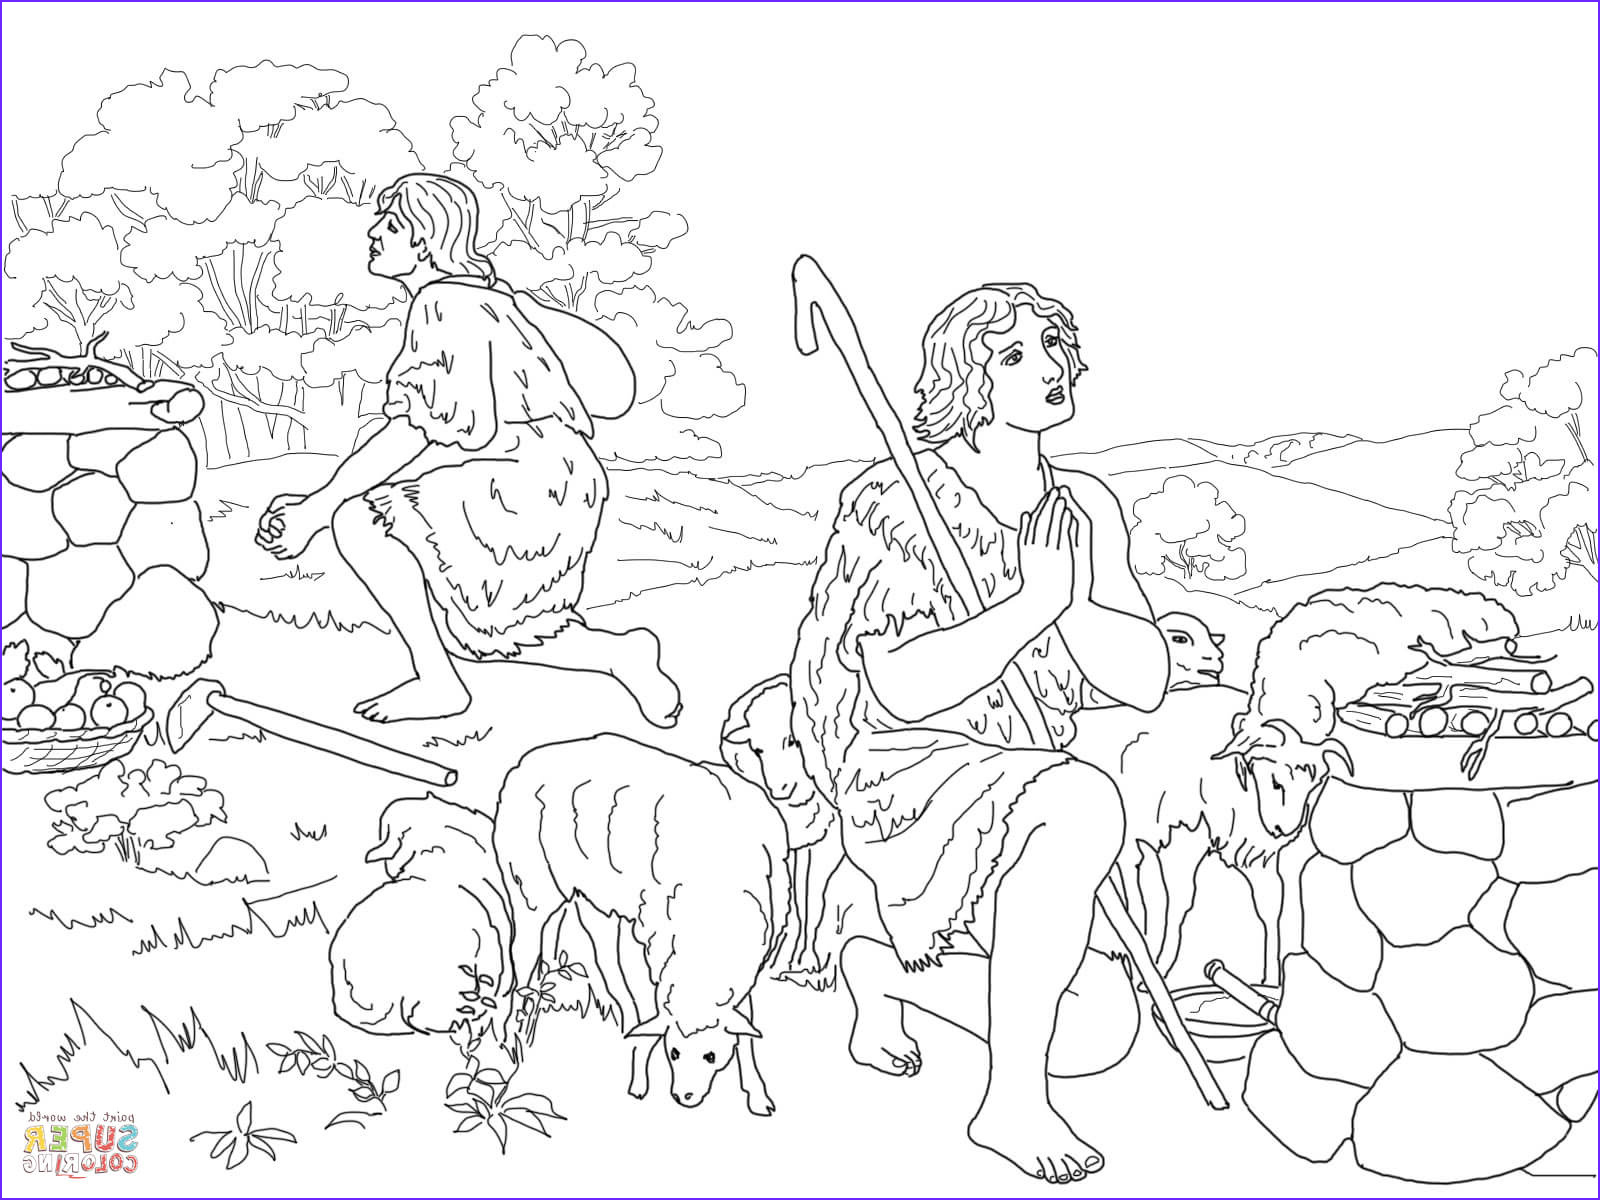 cain and abel coloring worksheet sketch templates